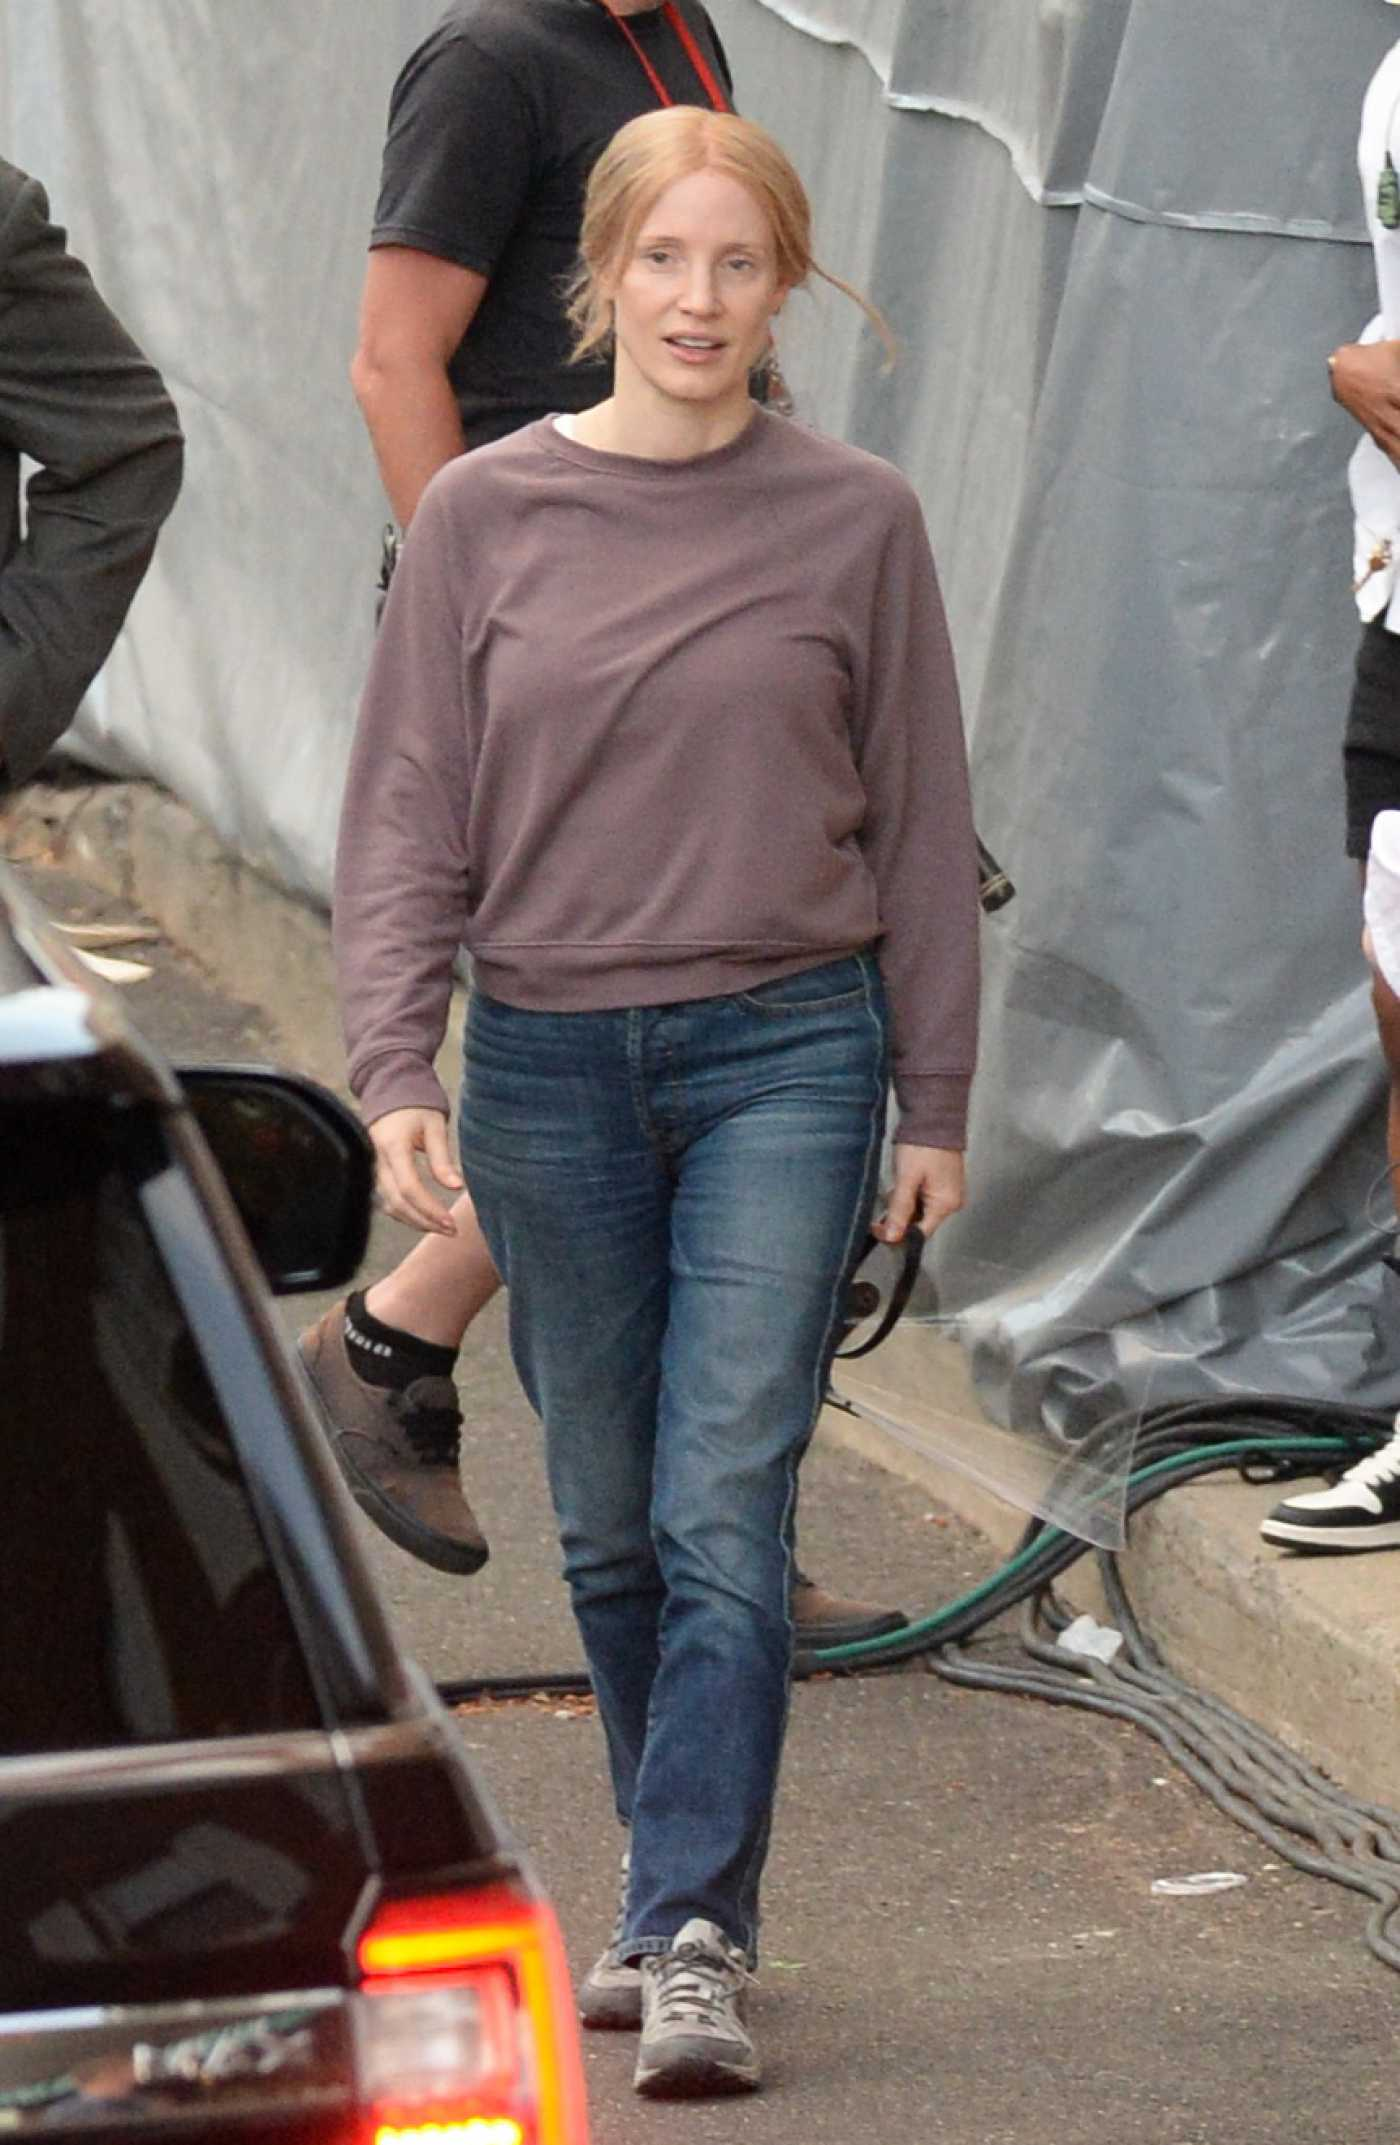 Jessica Chastain in a Tan Sweatshirt on the Set of The Good Nurse in Norwalk 05/28/2021